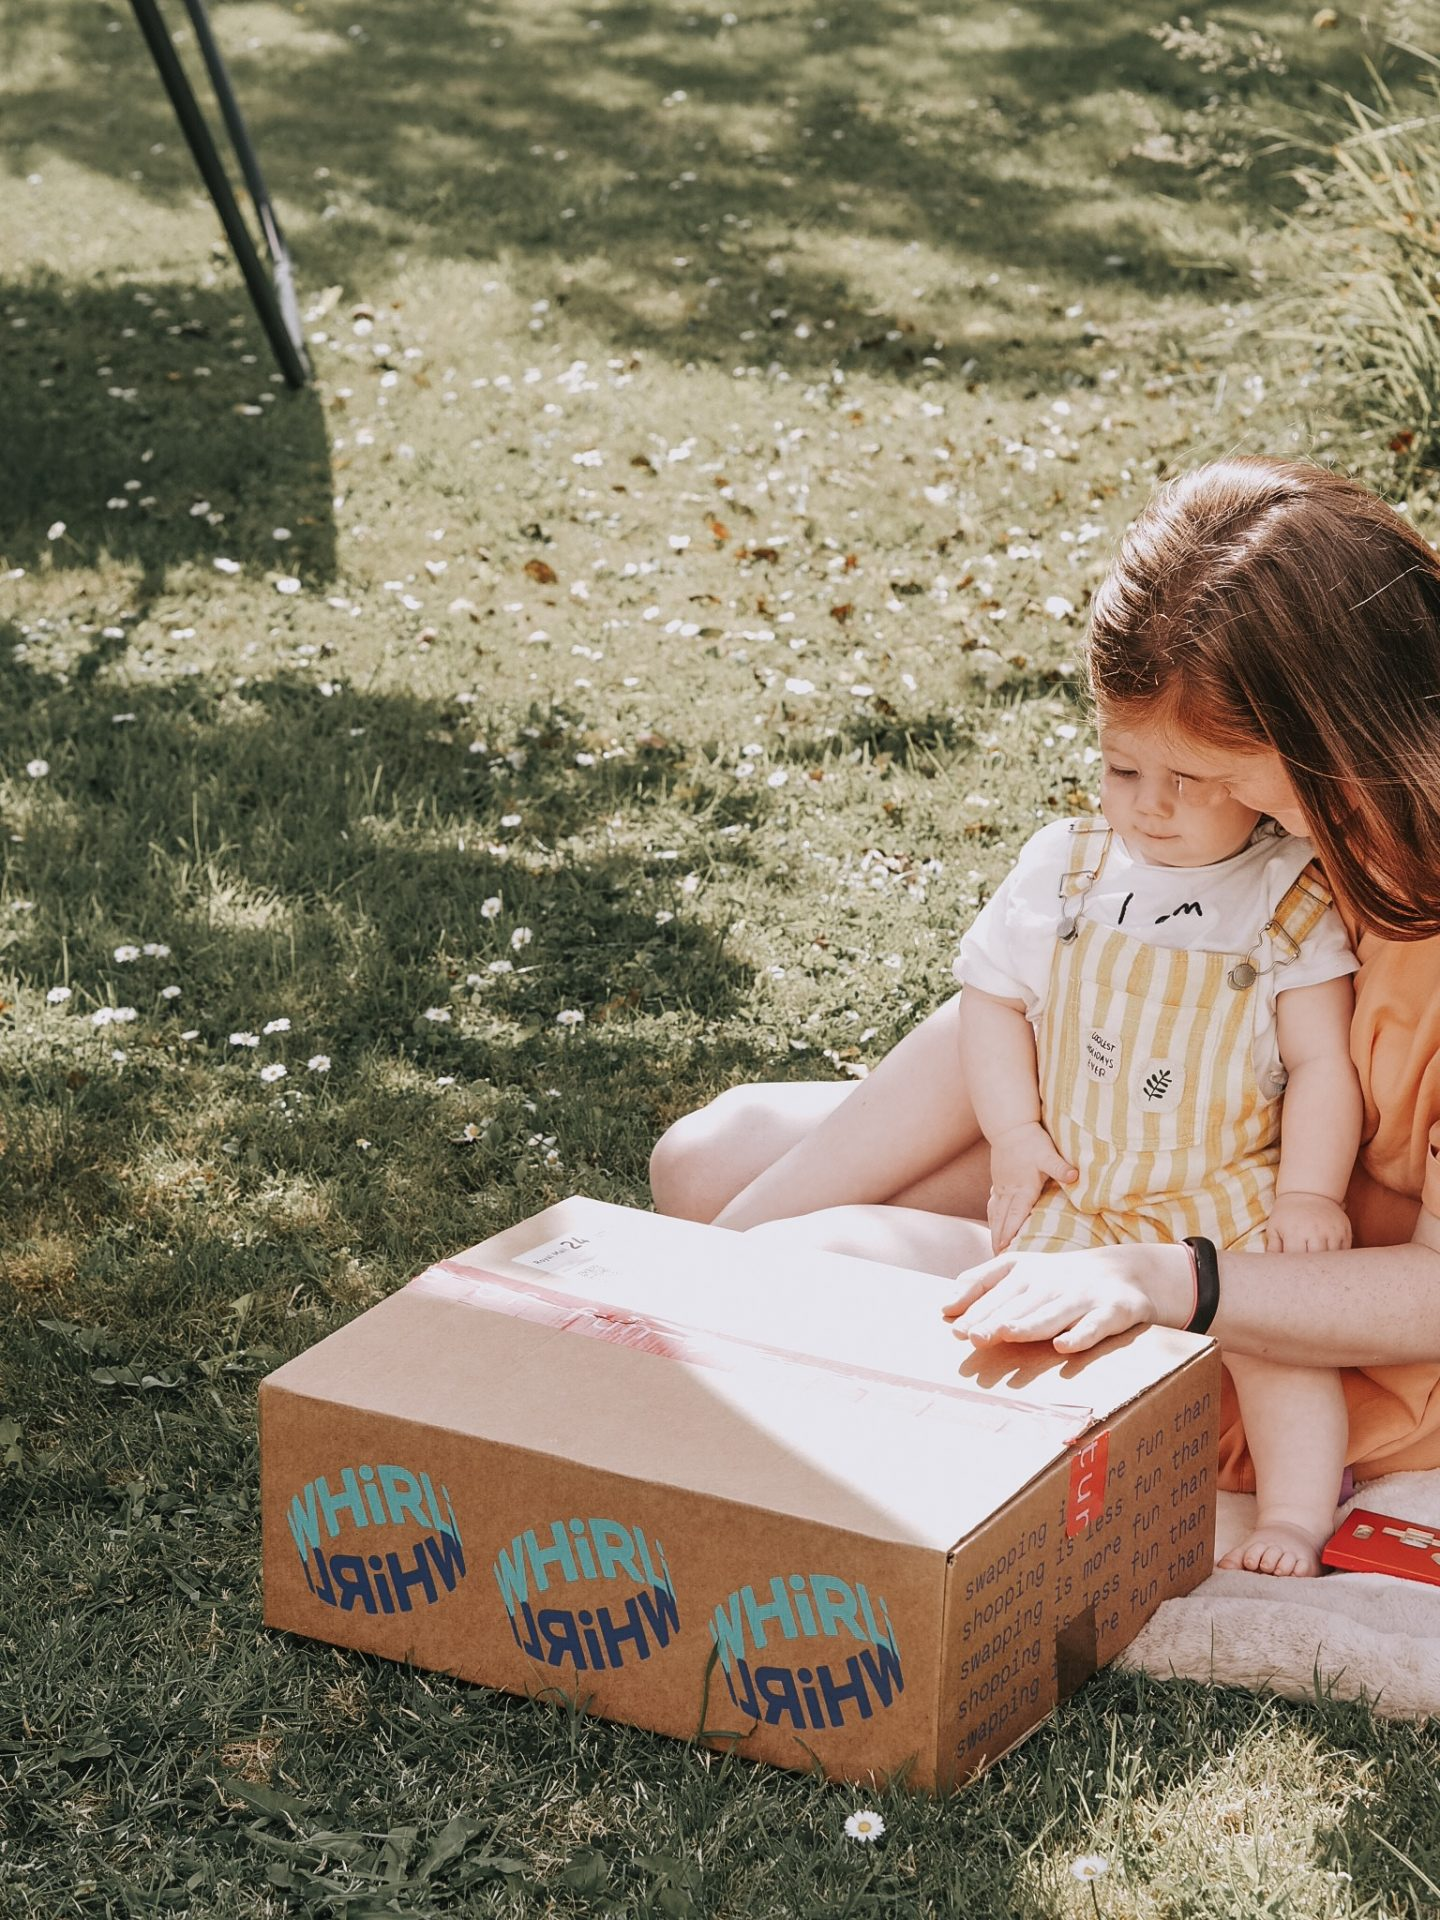 Whirli - An Online Toy Box